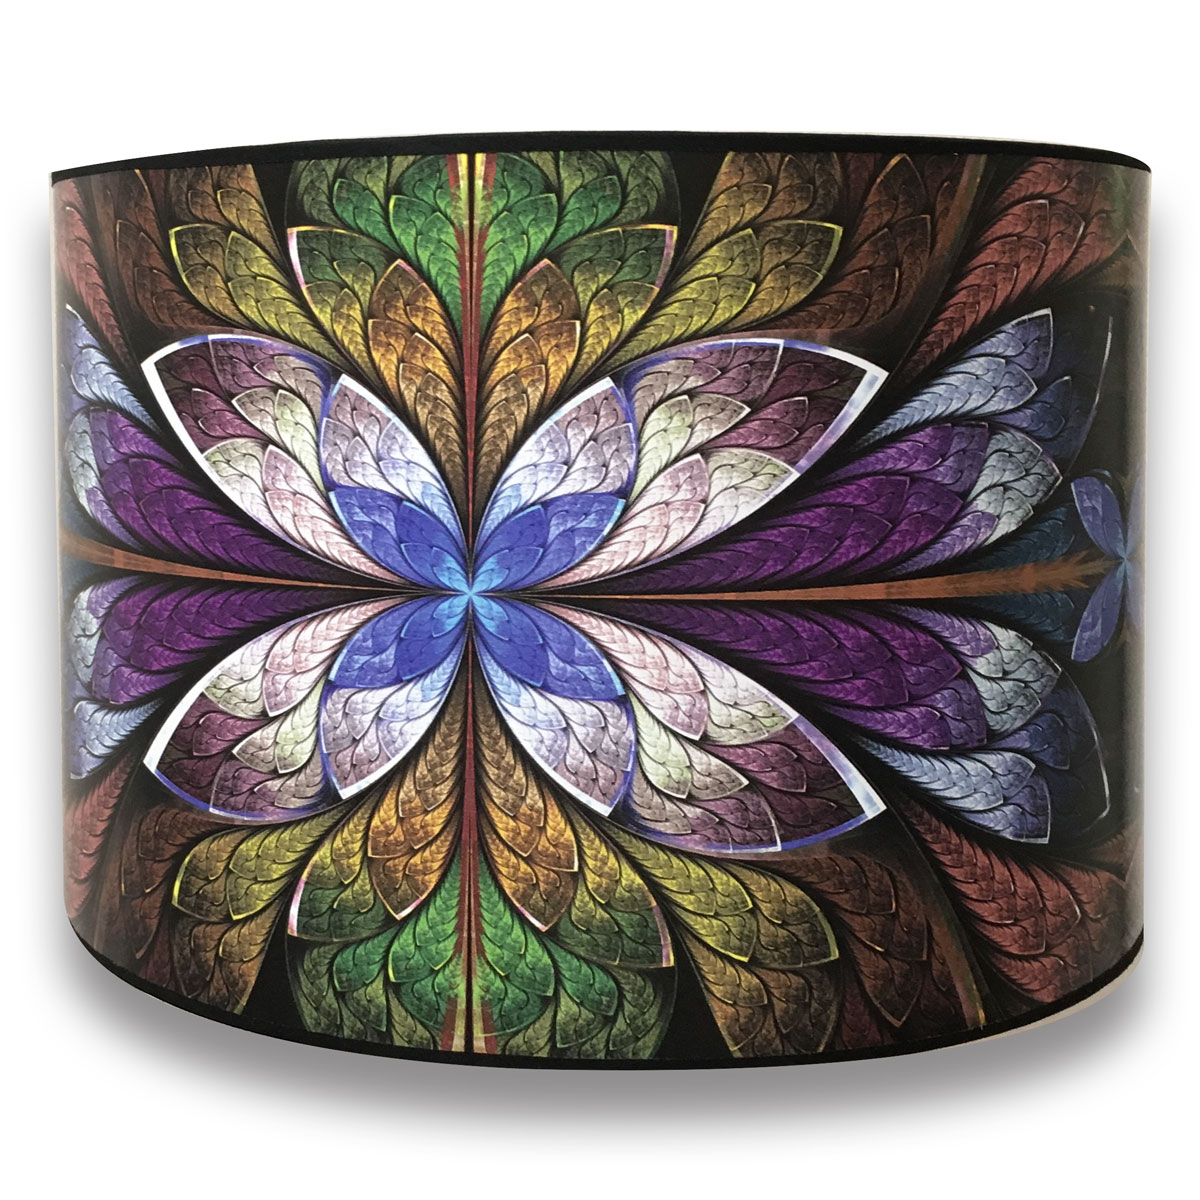 Royal Designs Modern Trendy Decorative Handmade Lamp Shade - Made in USA - Purple Flower Design -10 x 10 x 8